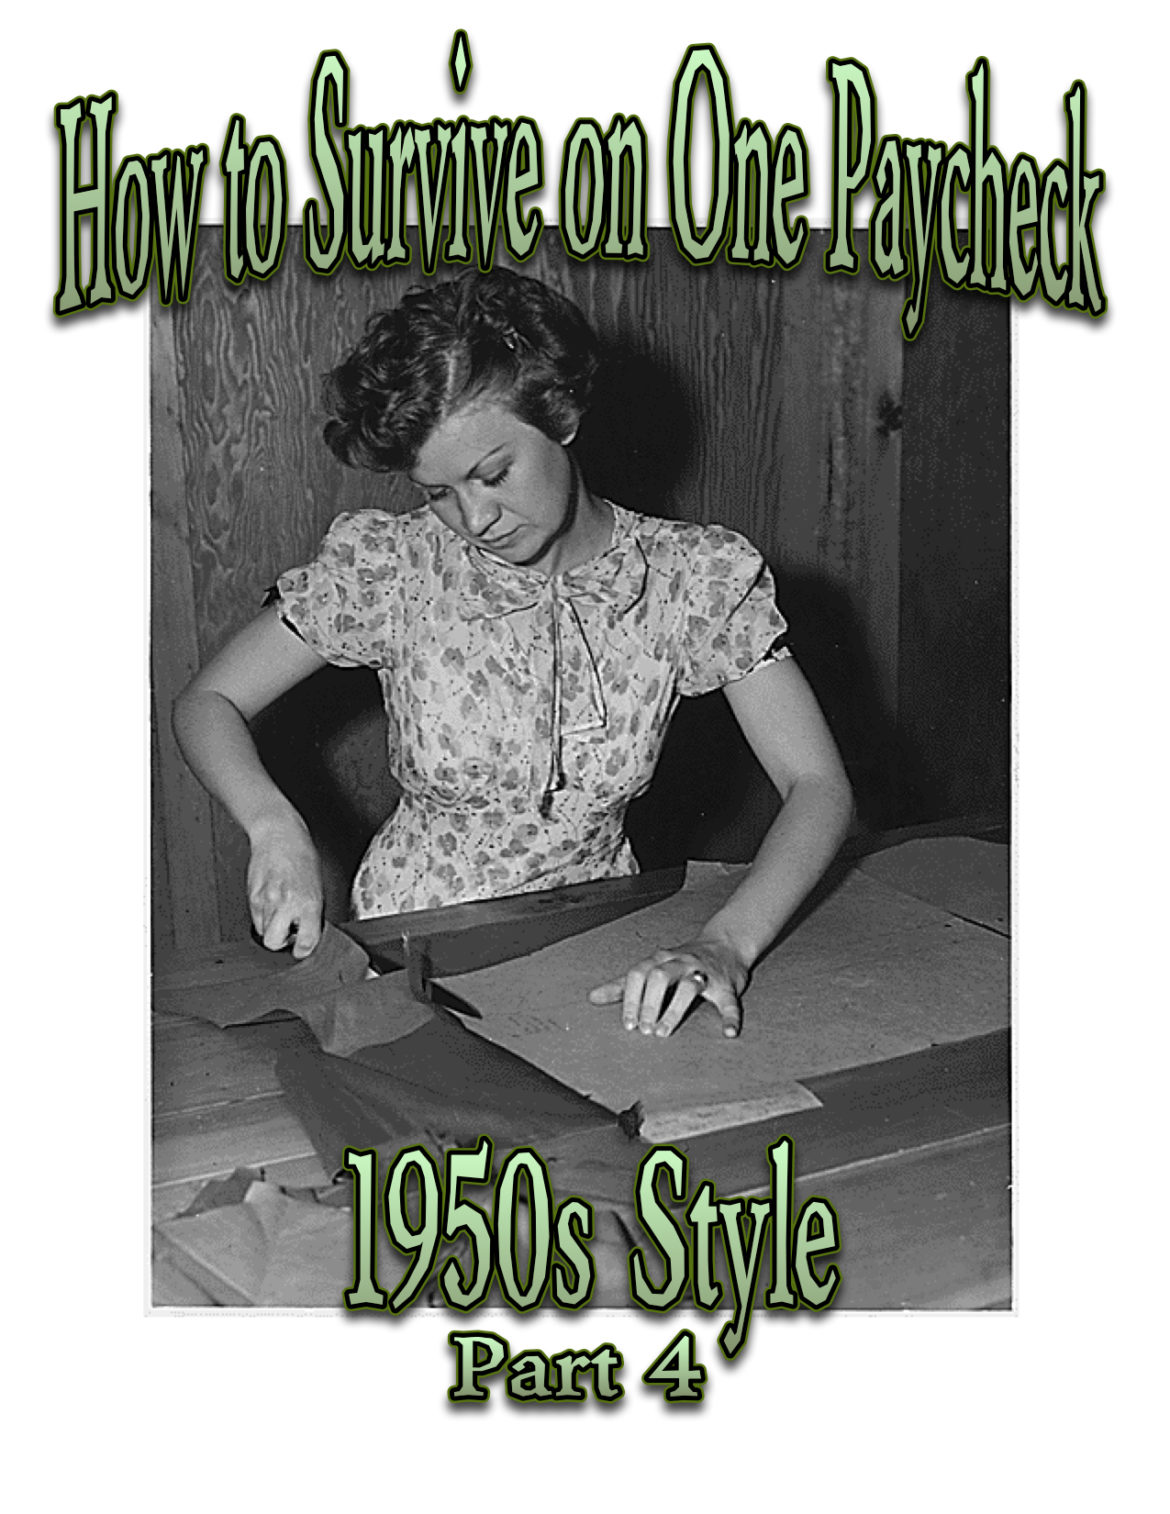 How to Survive on One Paycheck–1950's style